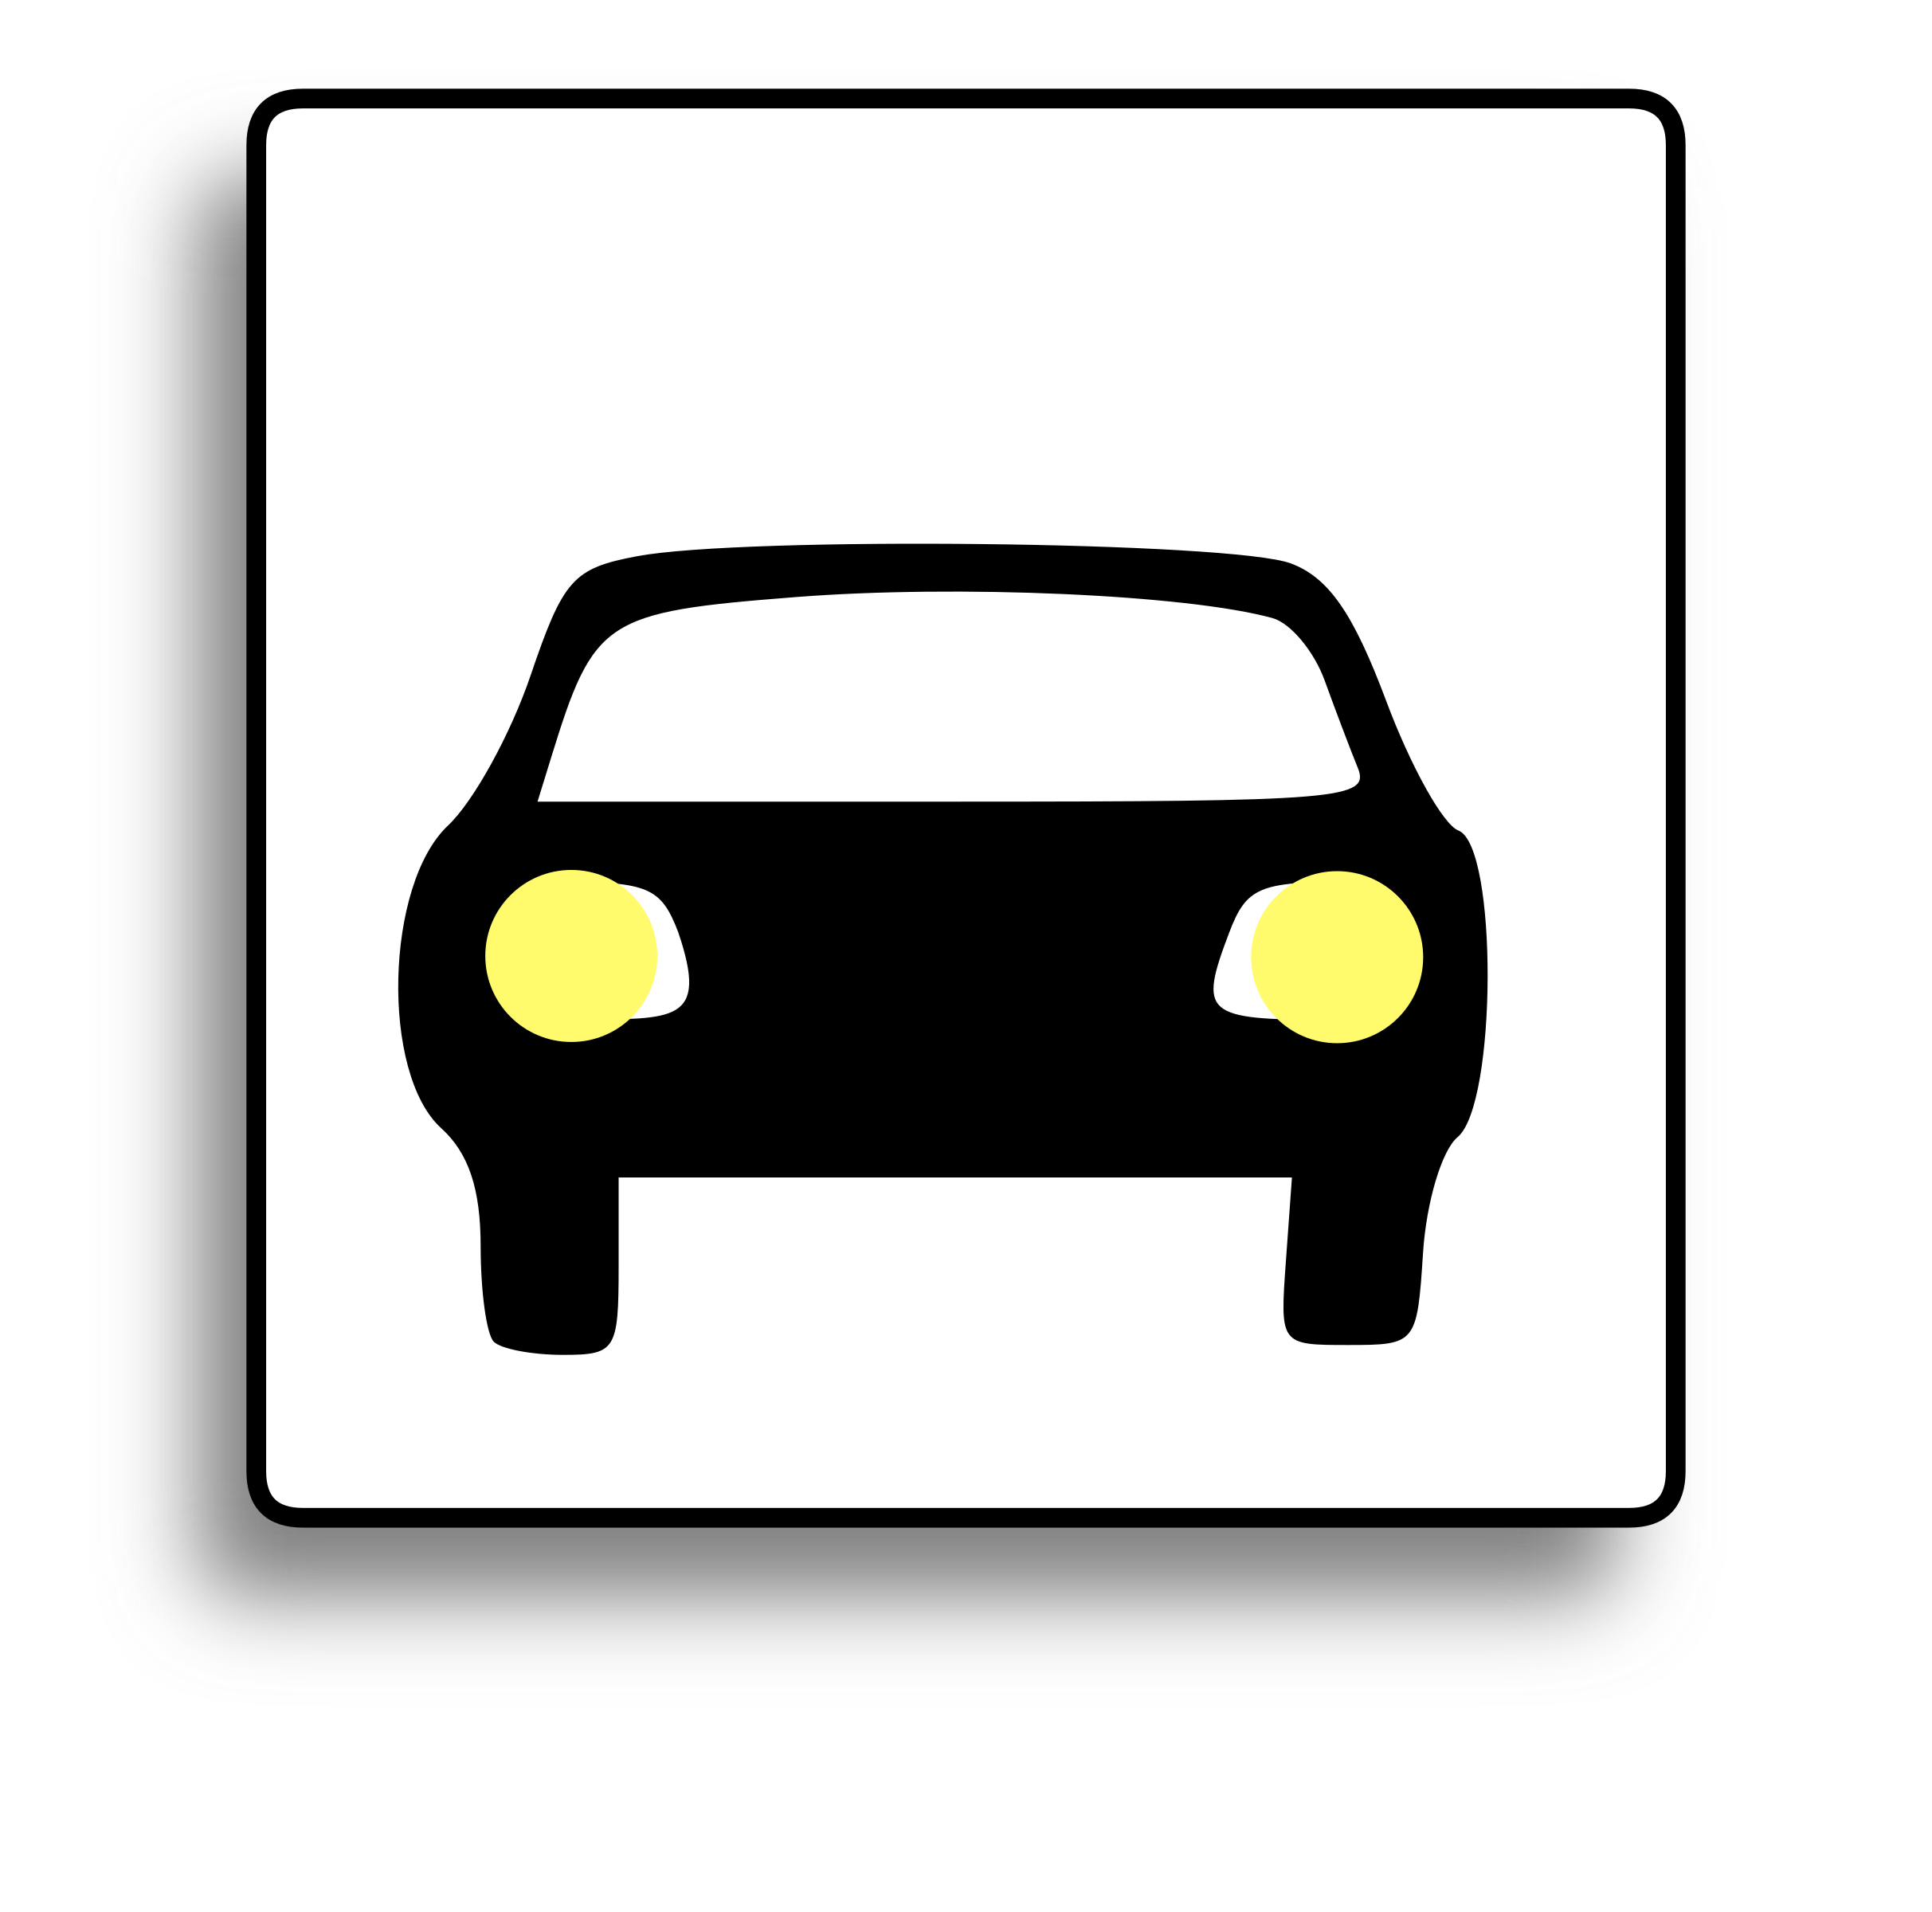 Car Icon for use with signs or buttons by milovanderlinden